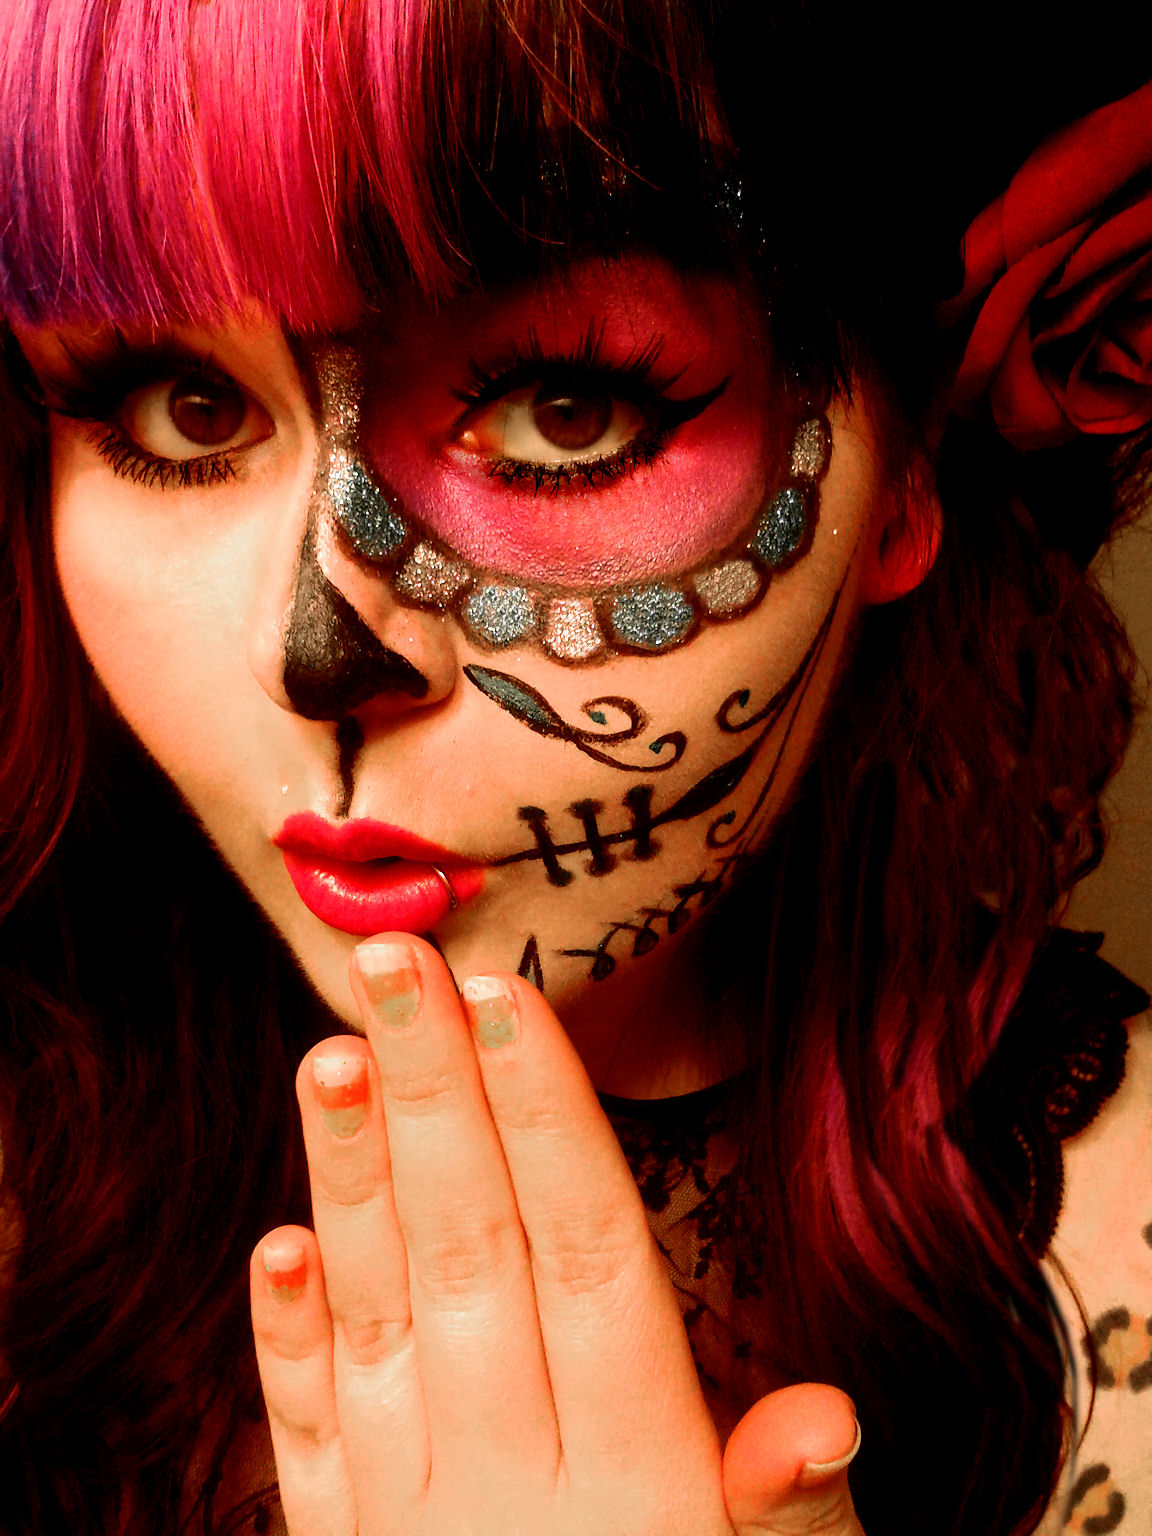 Sugar Skull Pin Up http://shannonshortcake.blogspot.com/2012/10/day-of-dead-sugar-skull-make-up-look.html